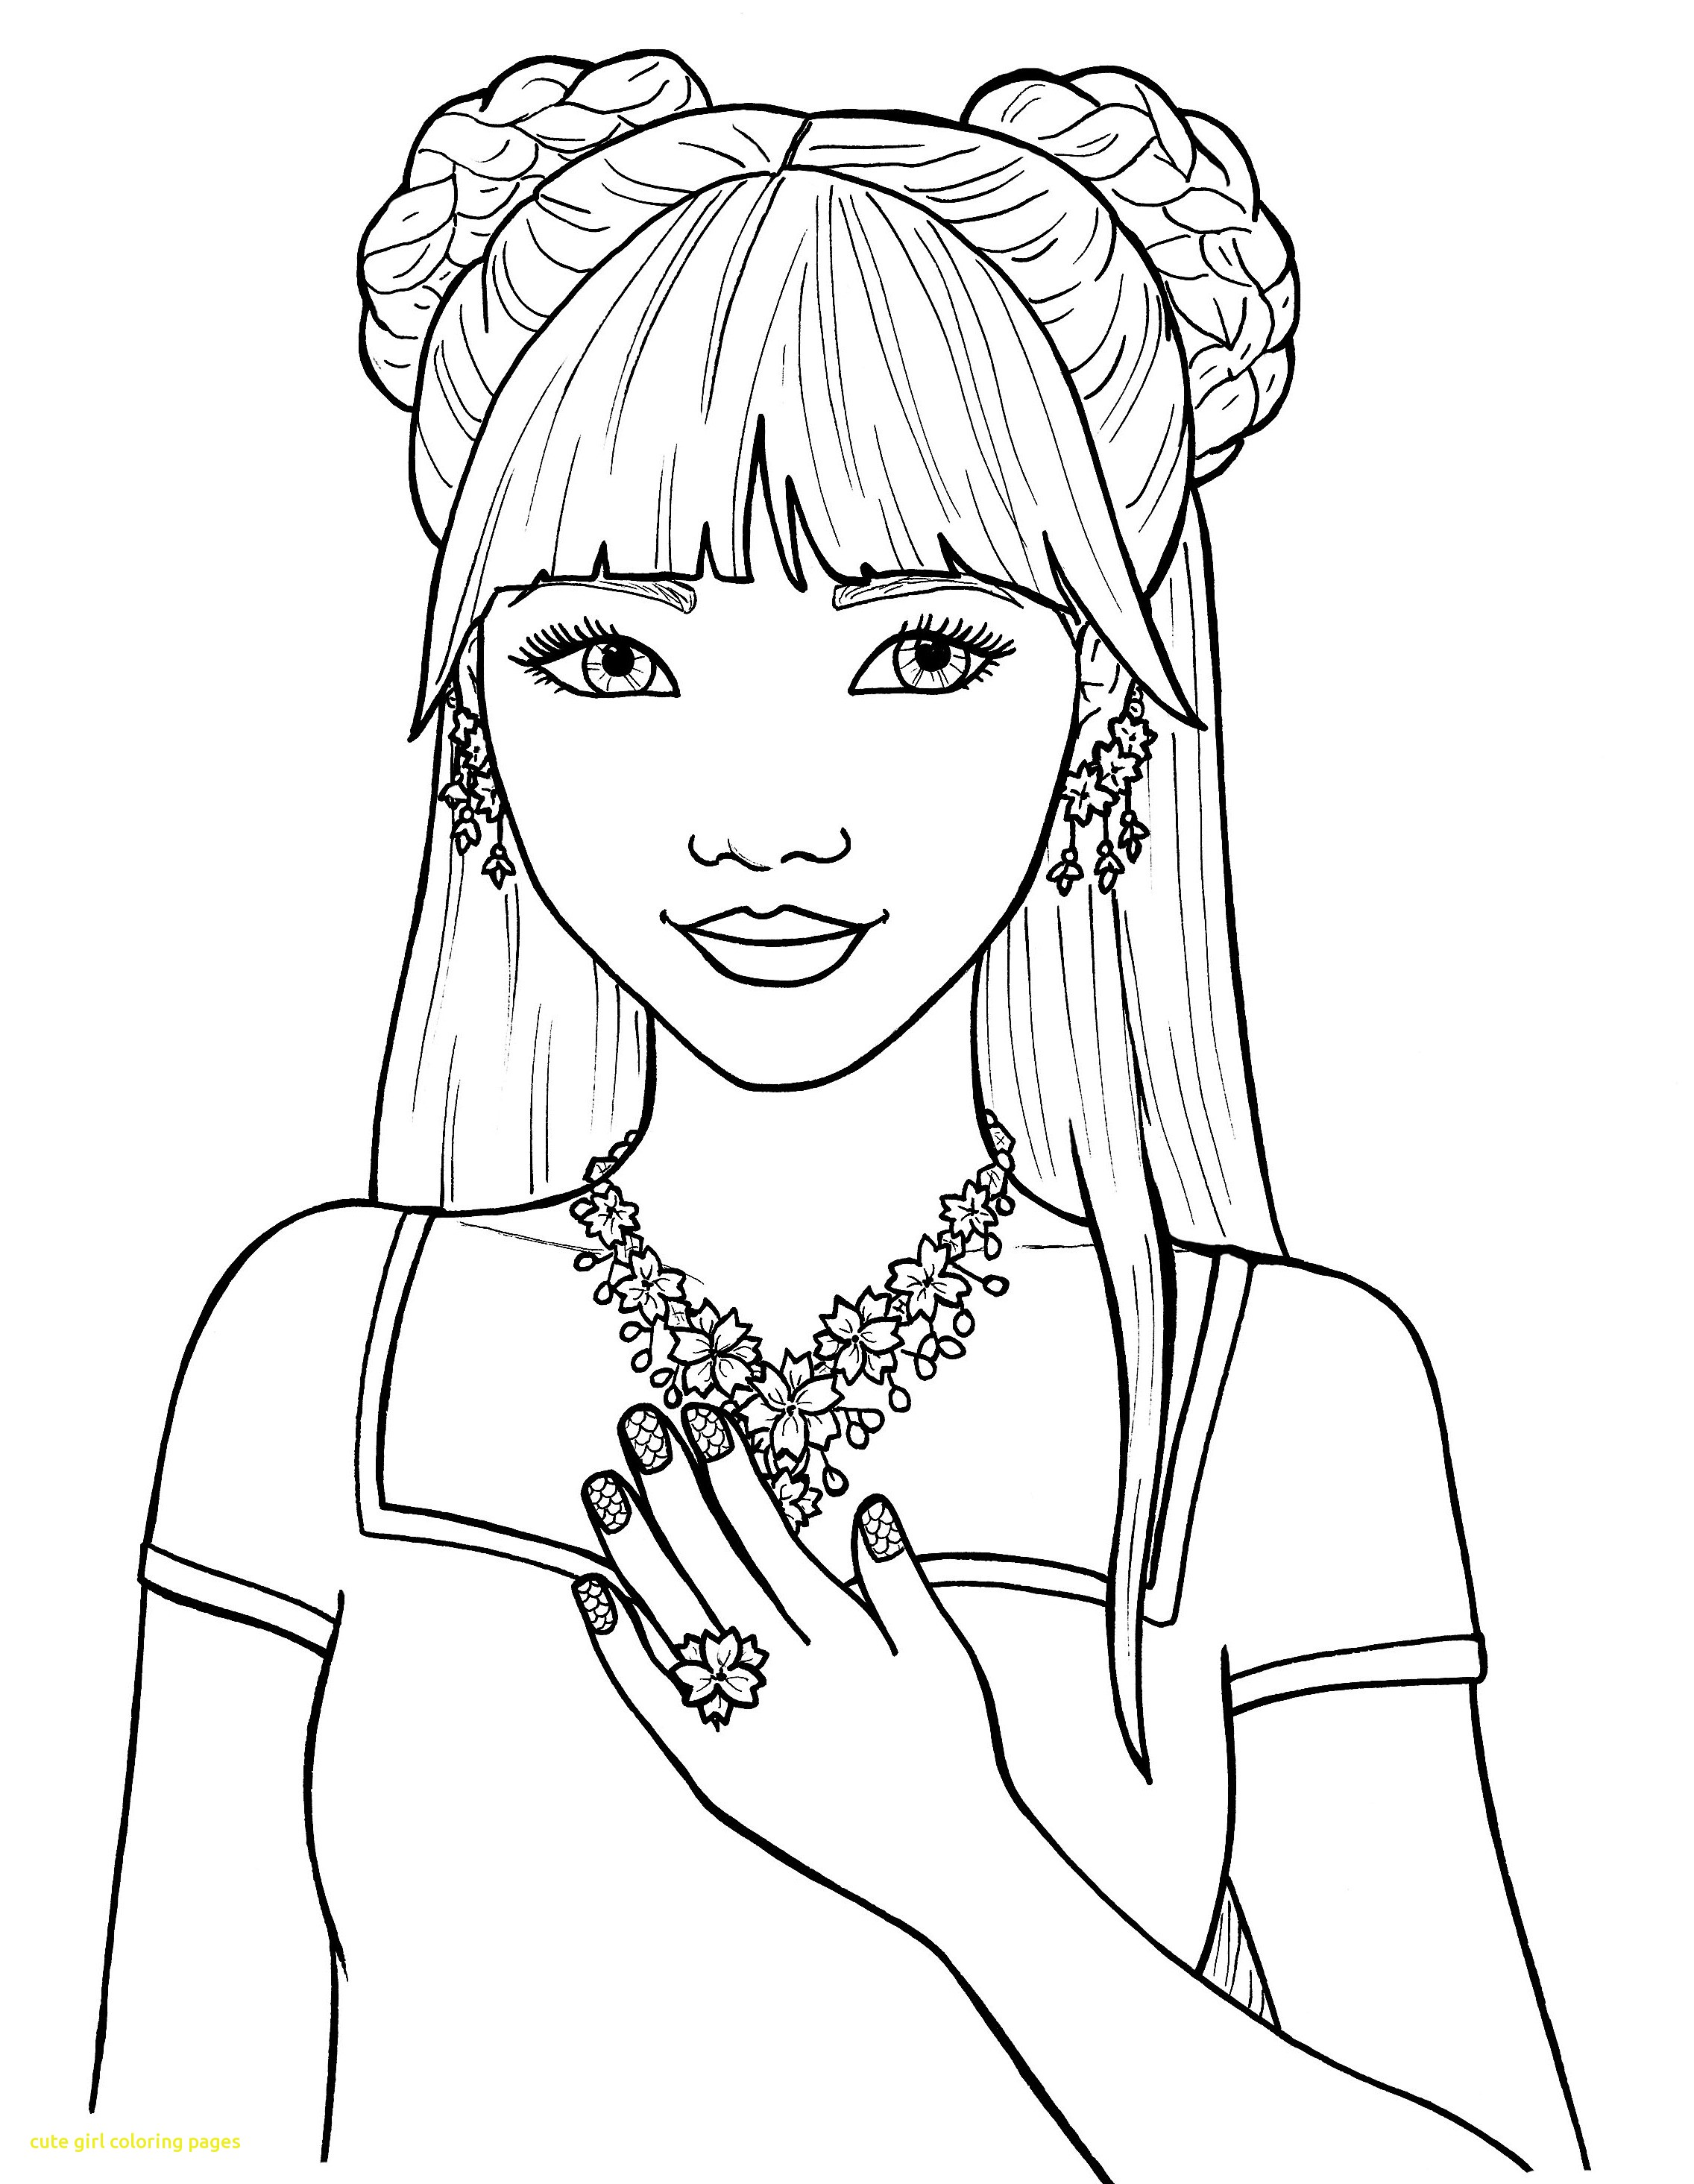 coloring picture printable coloring pages for girls best coloring pages for kids picture printable coloring